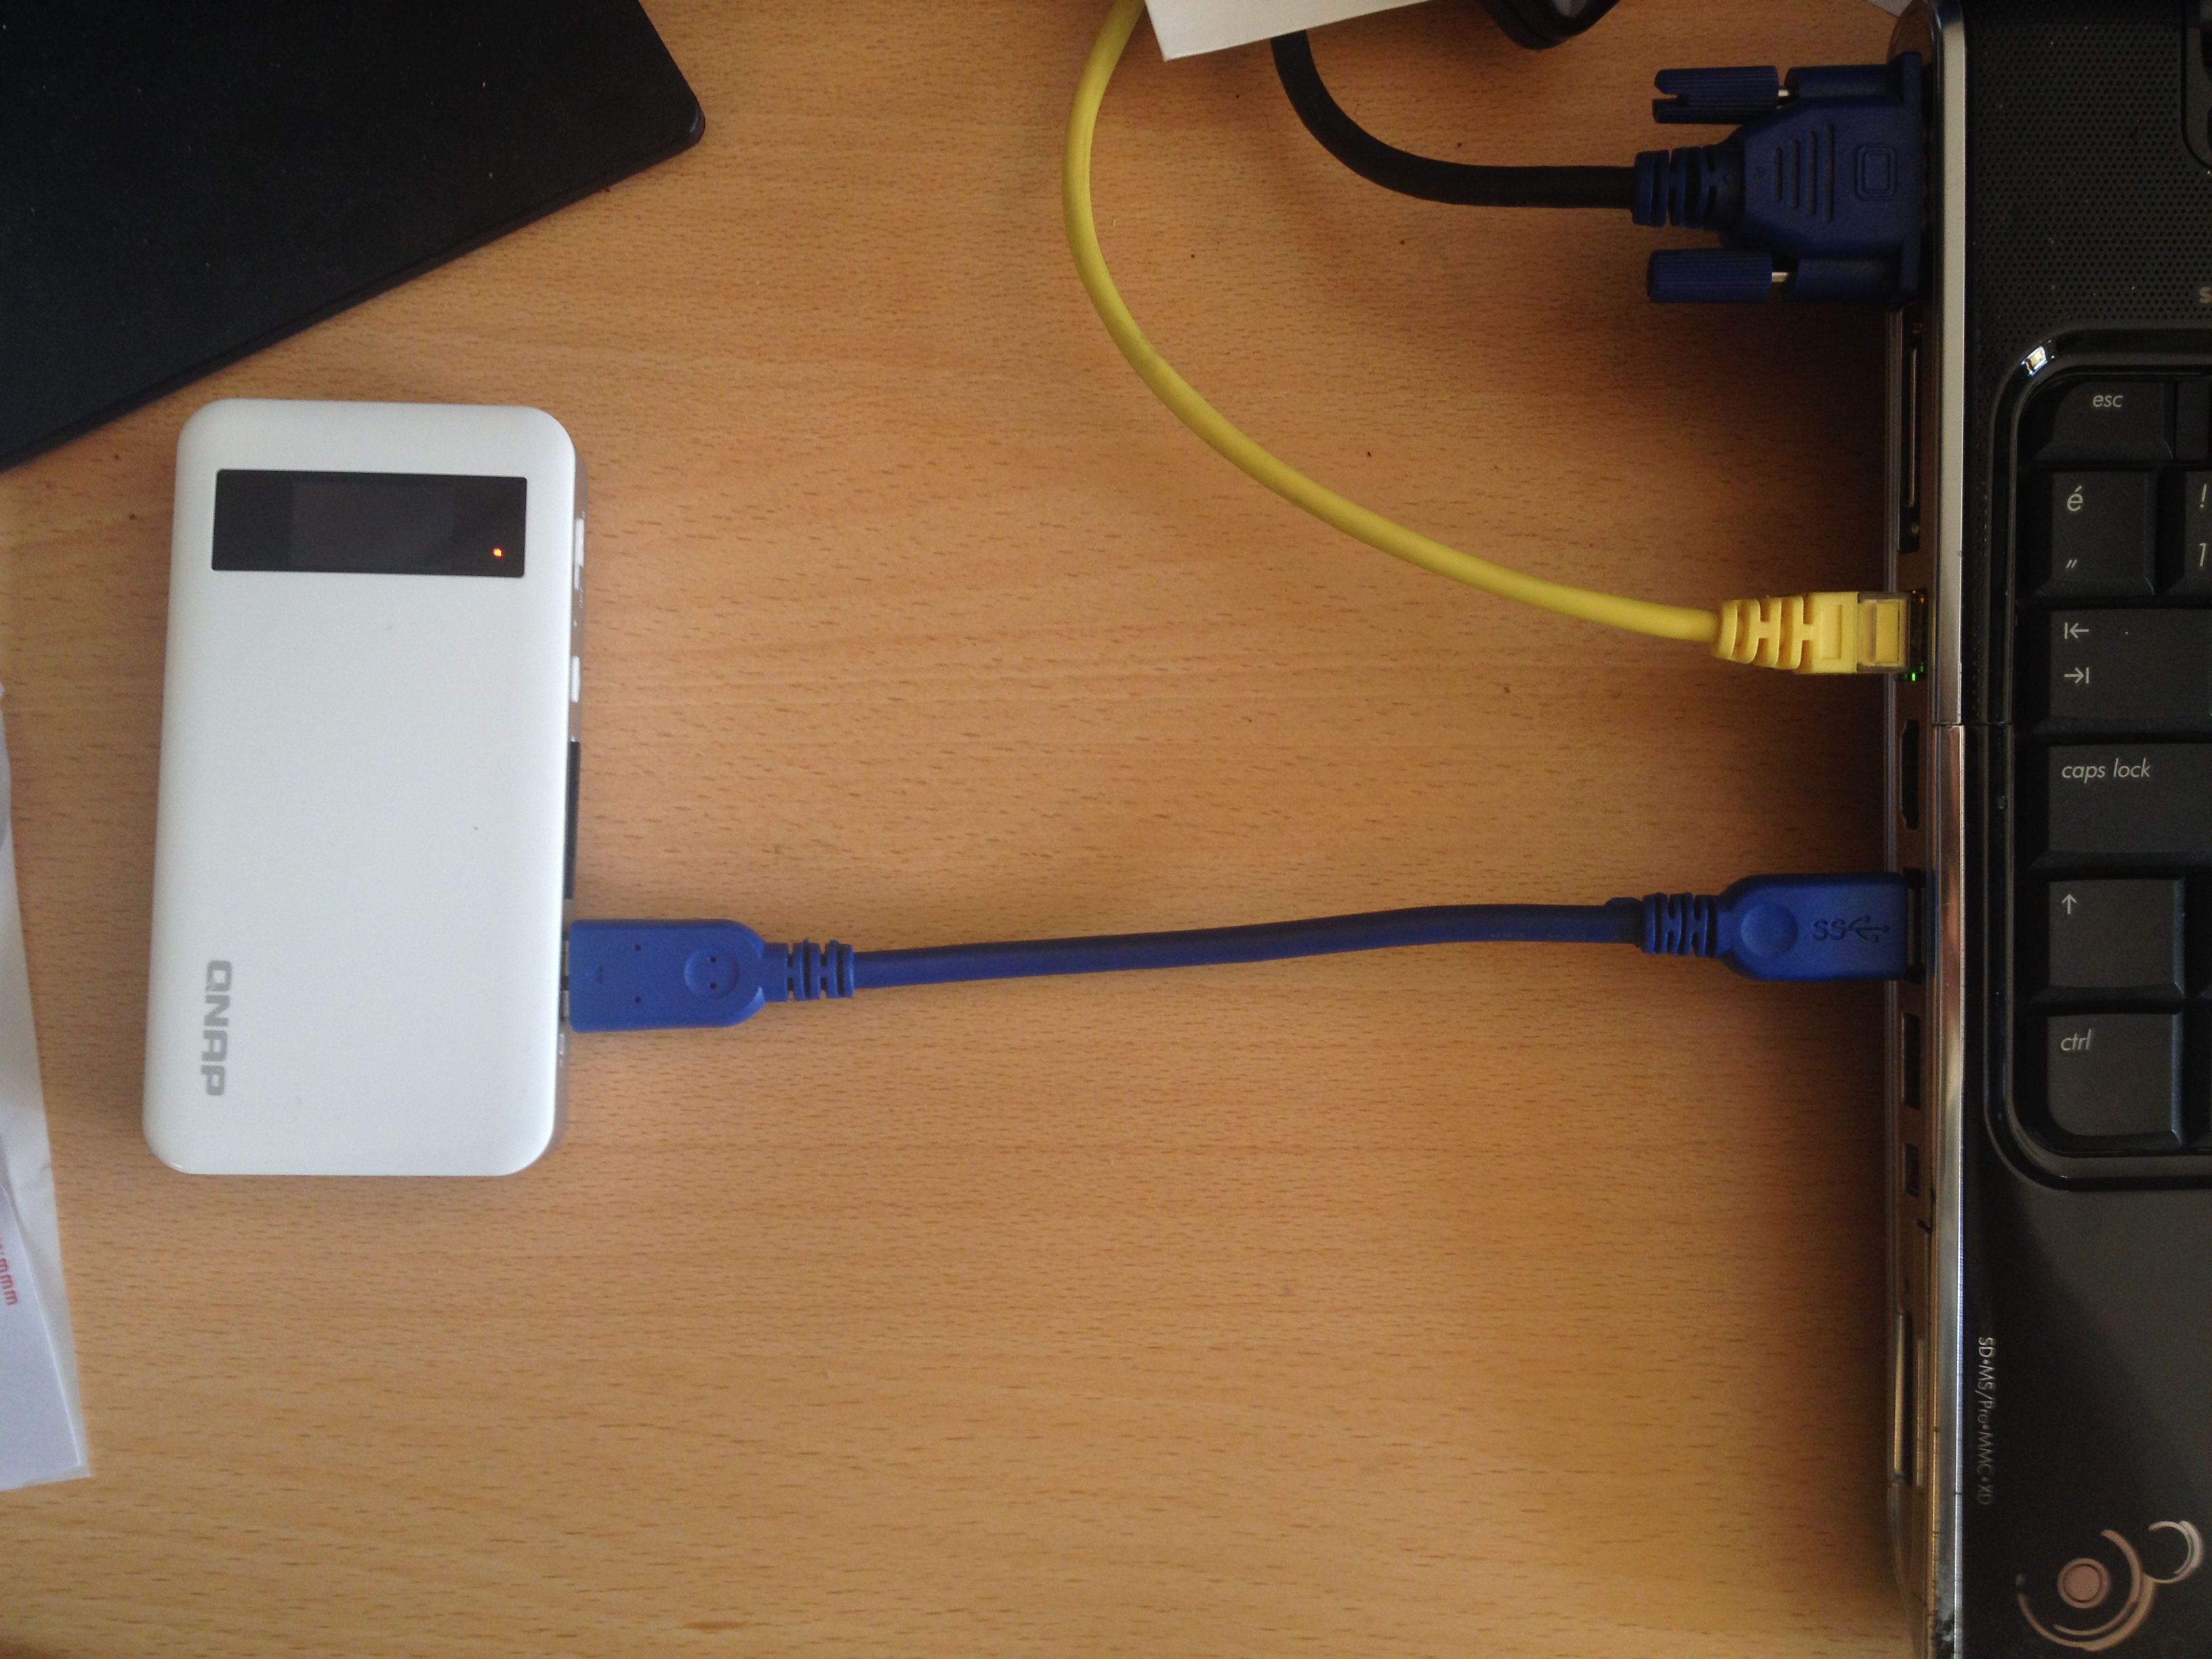 Qnap USB connection and charging